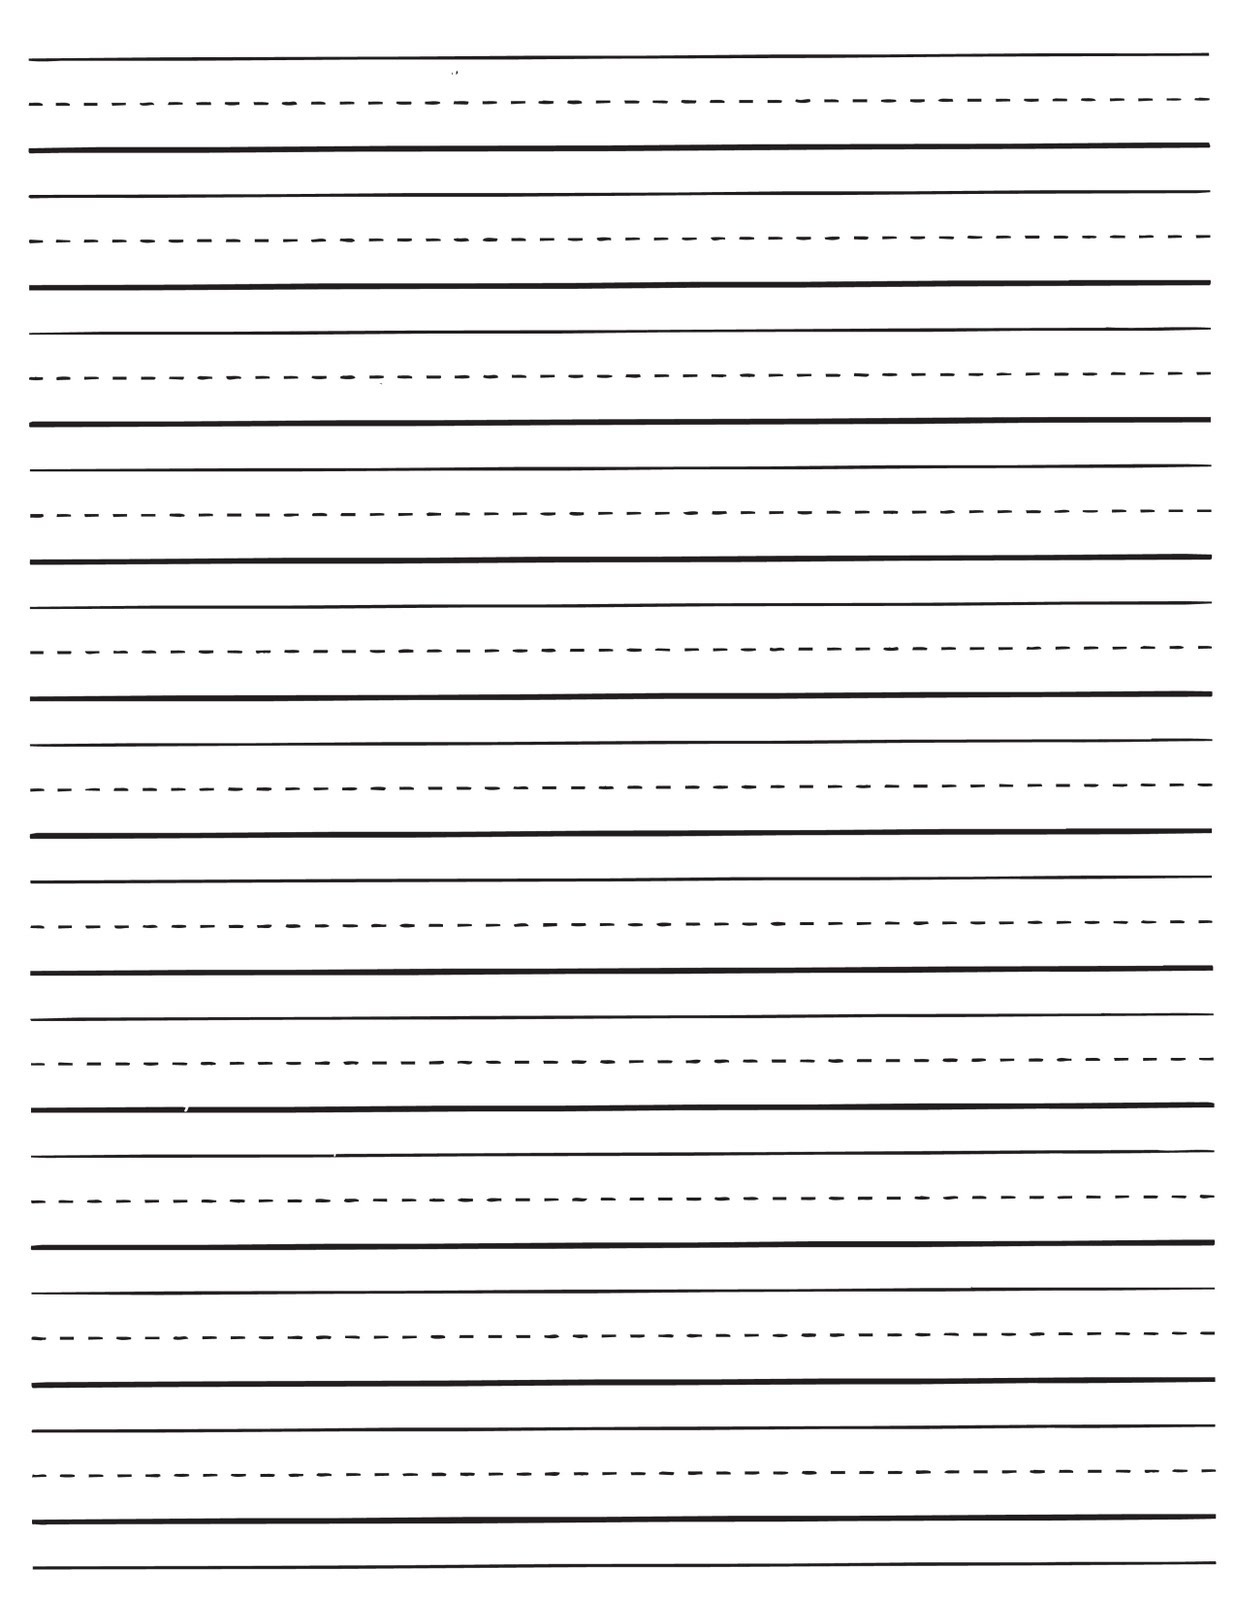 Printable Lined Paper For Kids   World Of Label - Free Printable Lined Writing Paper